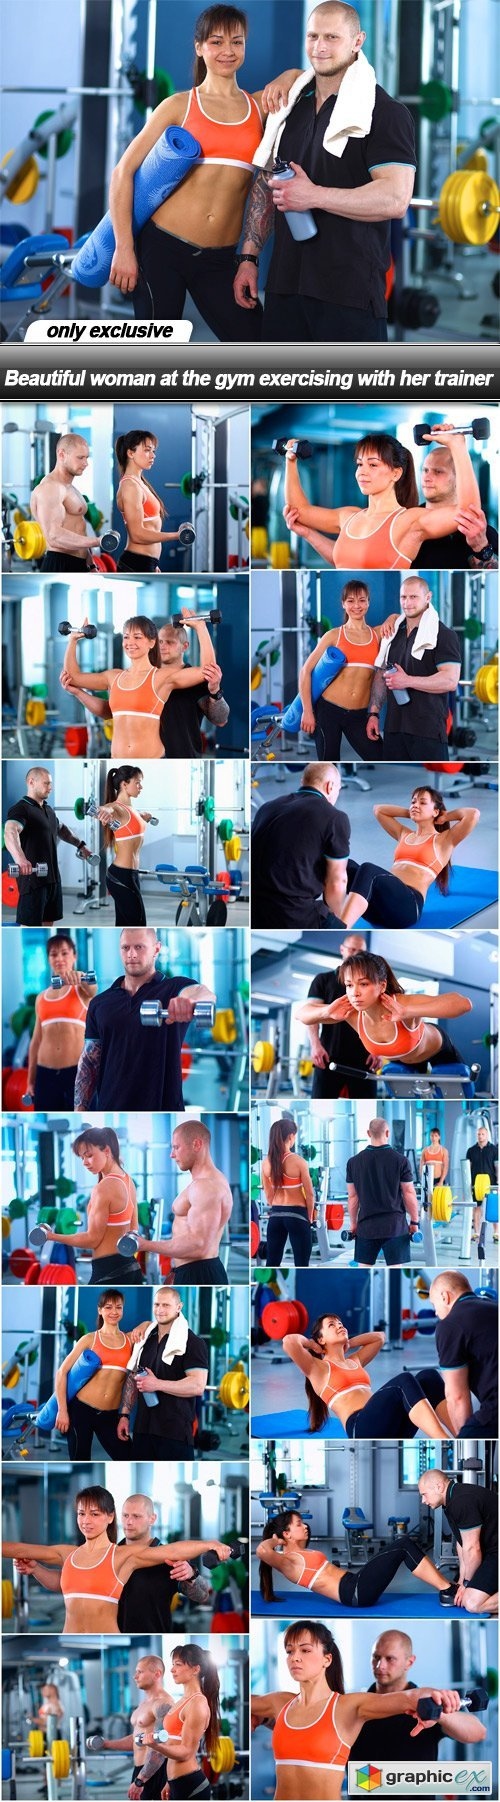 Beautiful woman at the gym exercising with her trainer - 16 UHQ JPEG